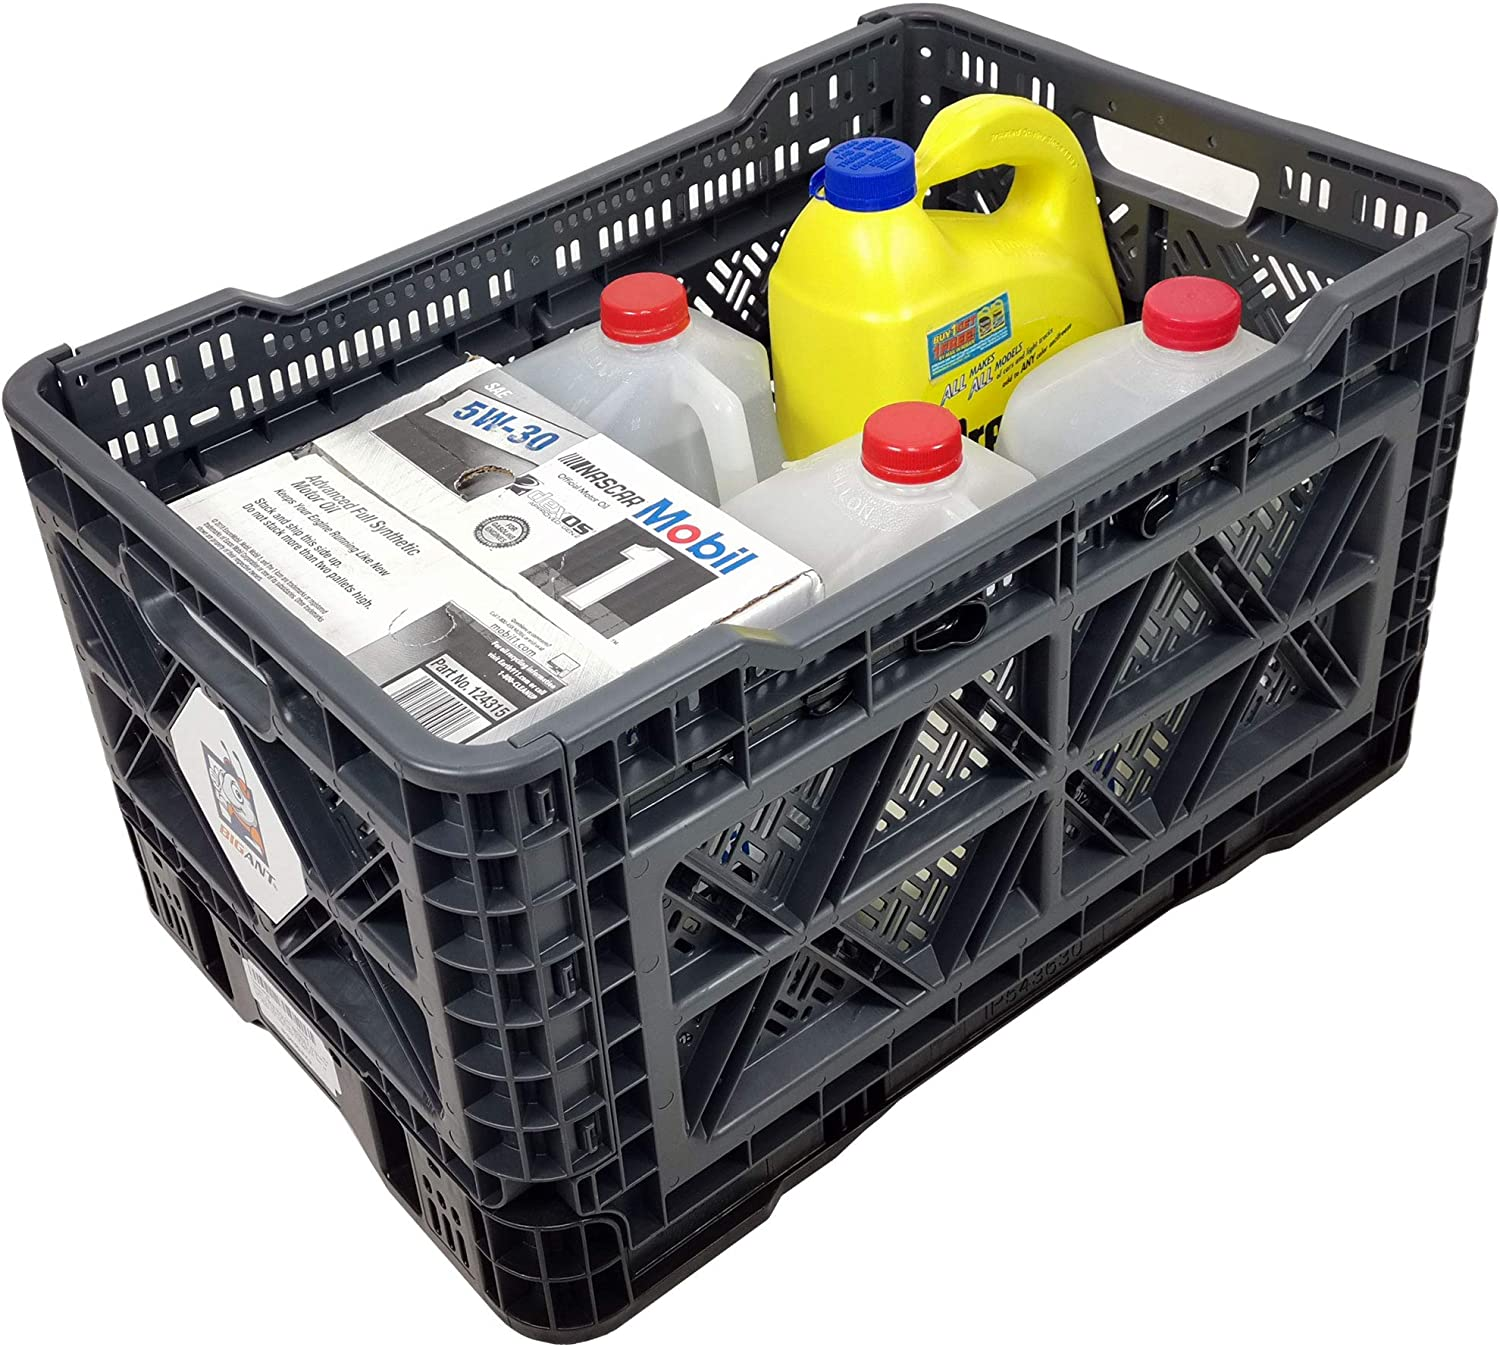 BIGANT Heavy Duty Collapsible & Stackable Plastic Milk Crate - IP543630, 12.7 Gallons, Medium Size, Charc.Gray, Set of 1, Snap Lock Foldable Industrial Garage Storage Bin Container Utility Basket